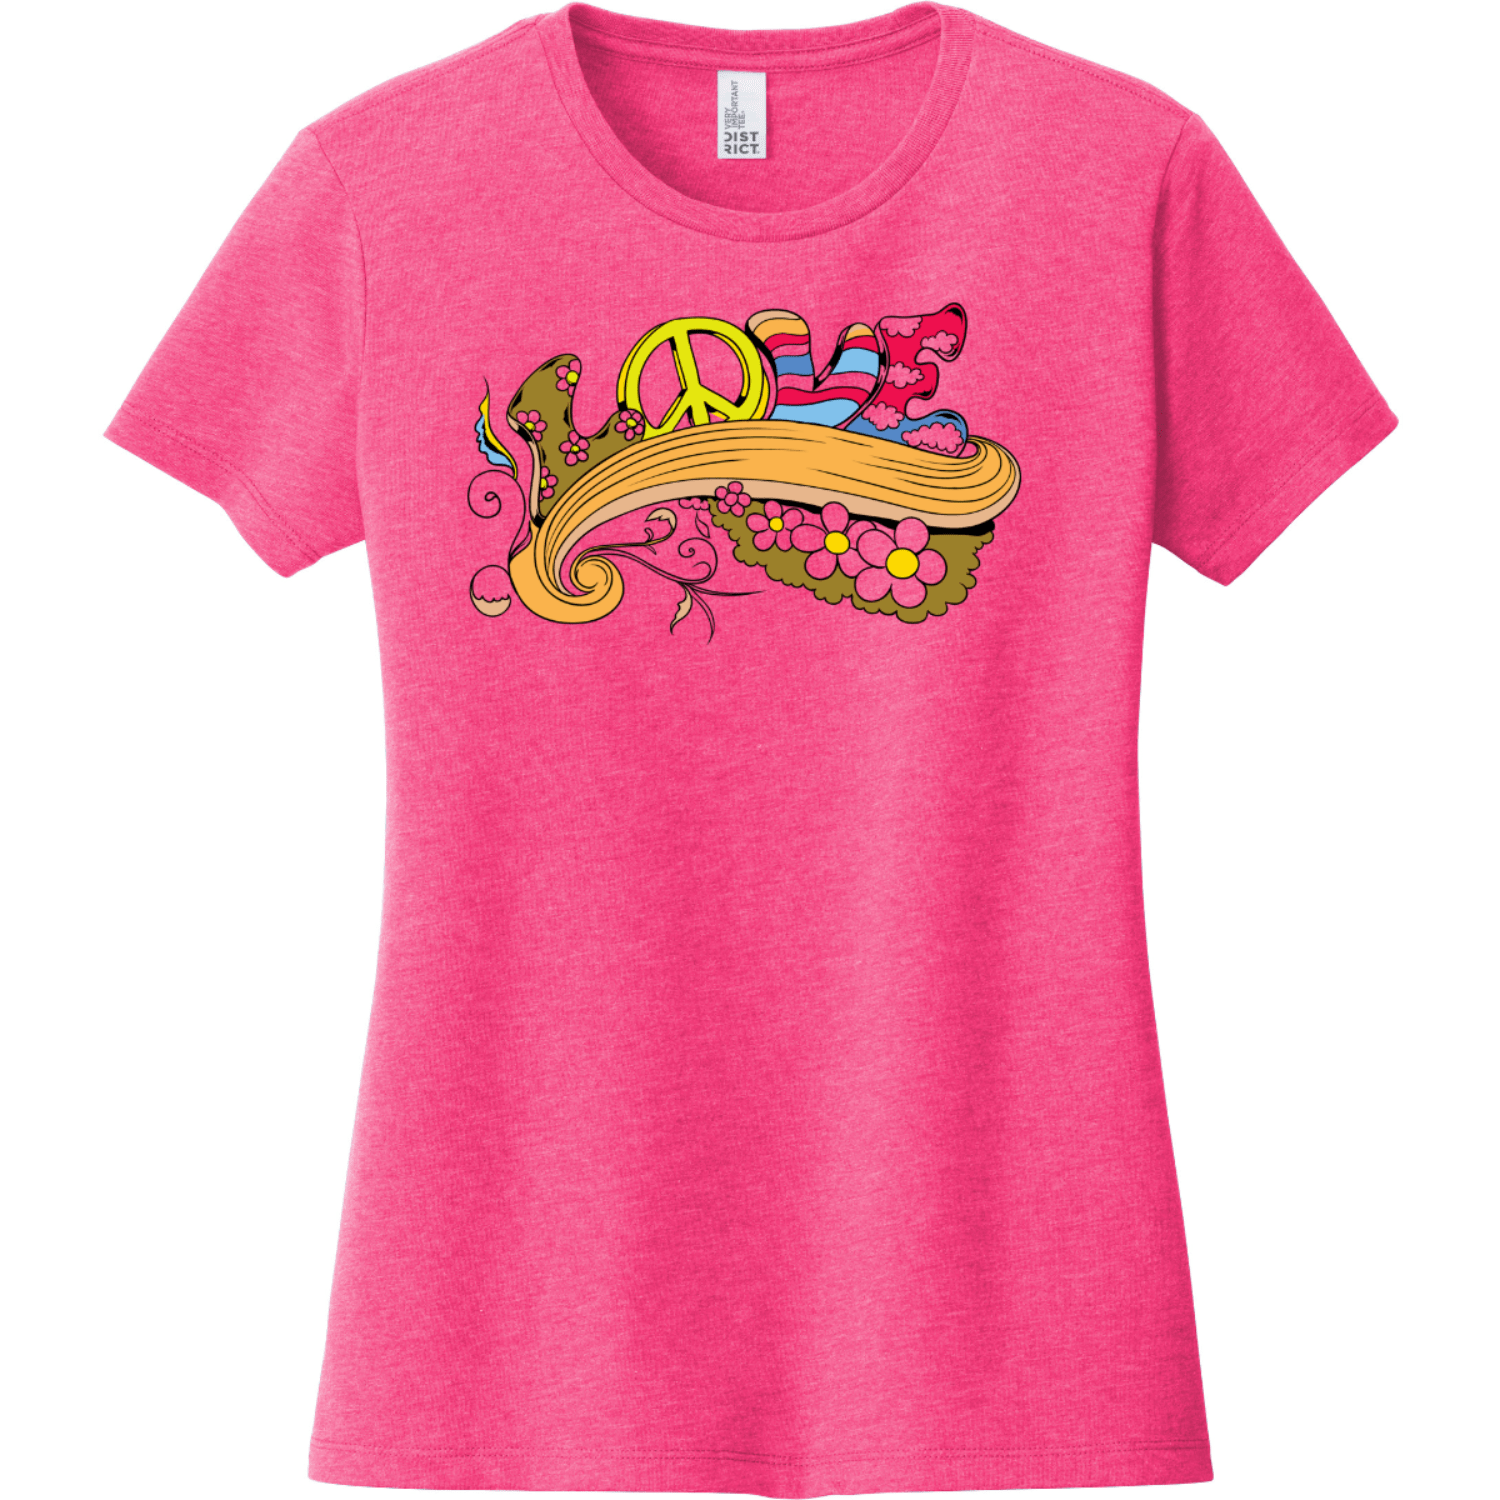 Love Peace T-Shirt For Women Fuchsia Frost District Women's Very Important Tee DT6002